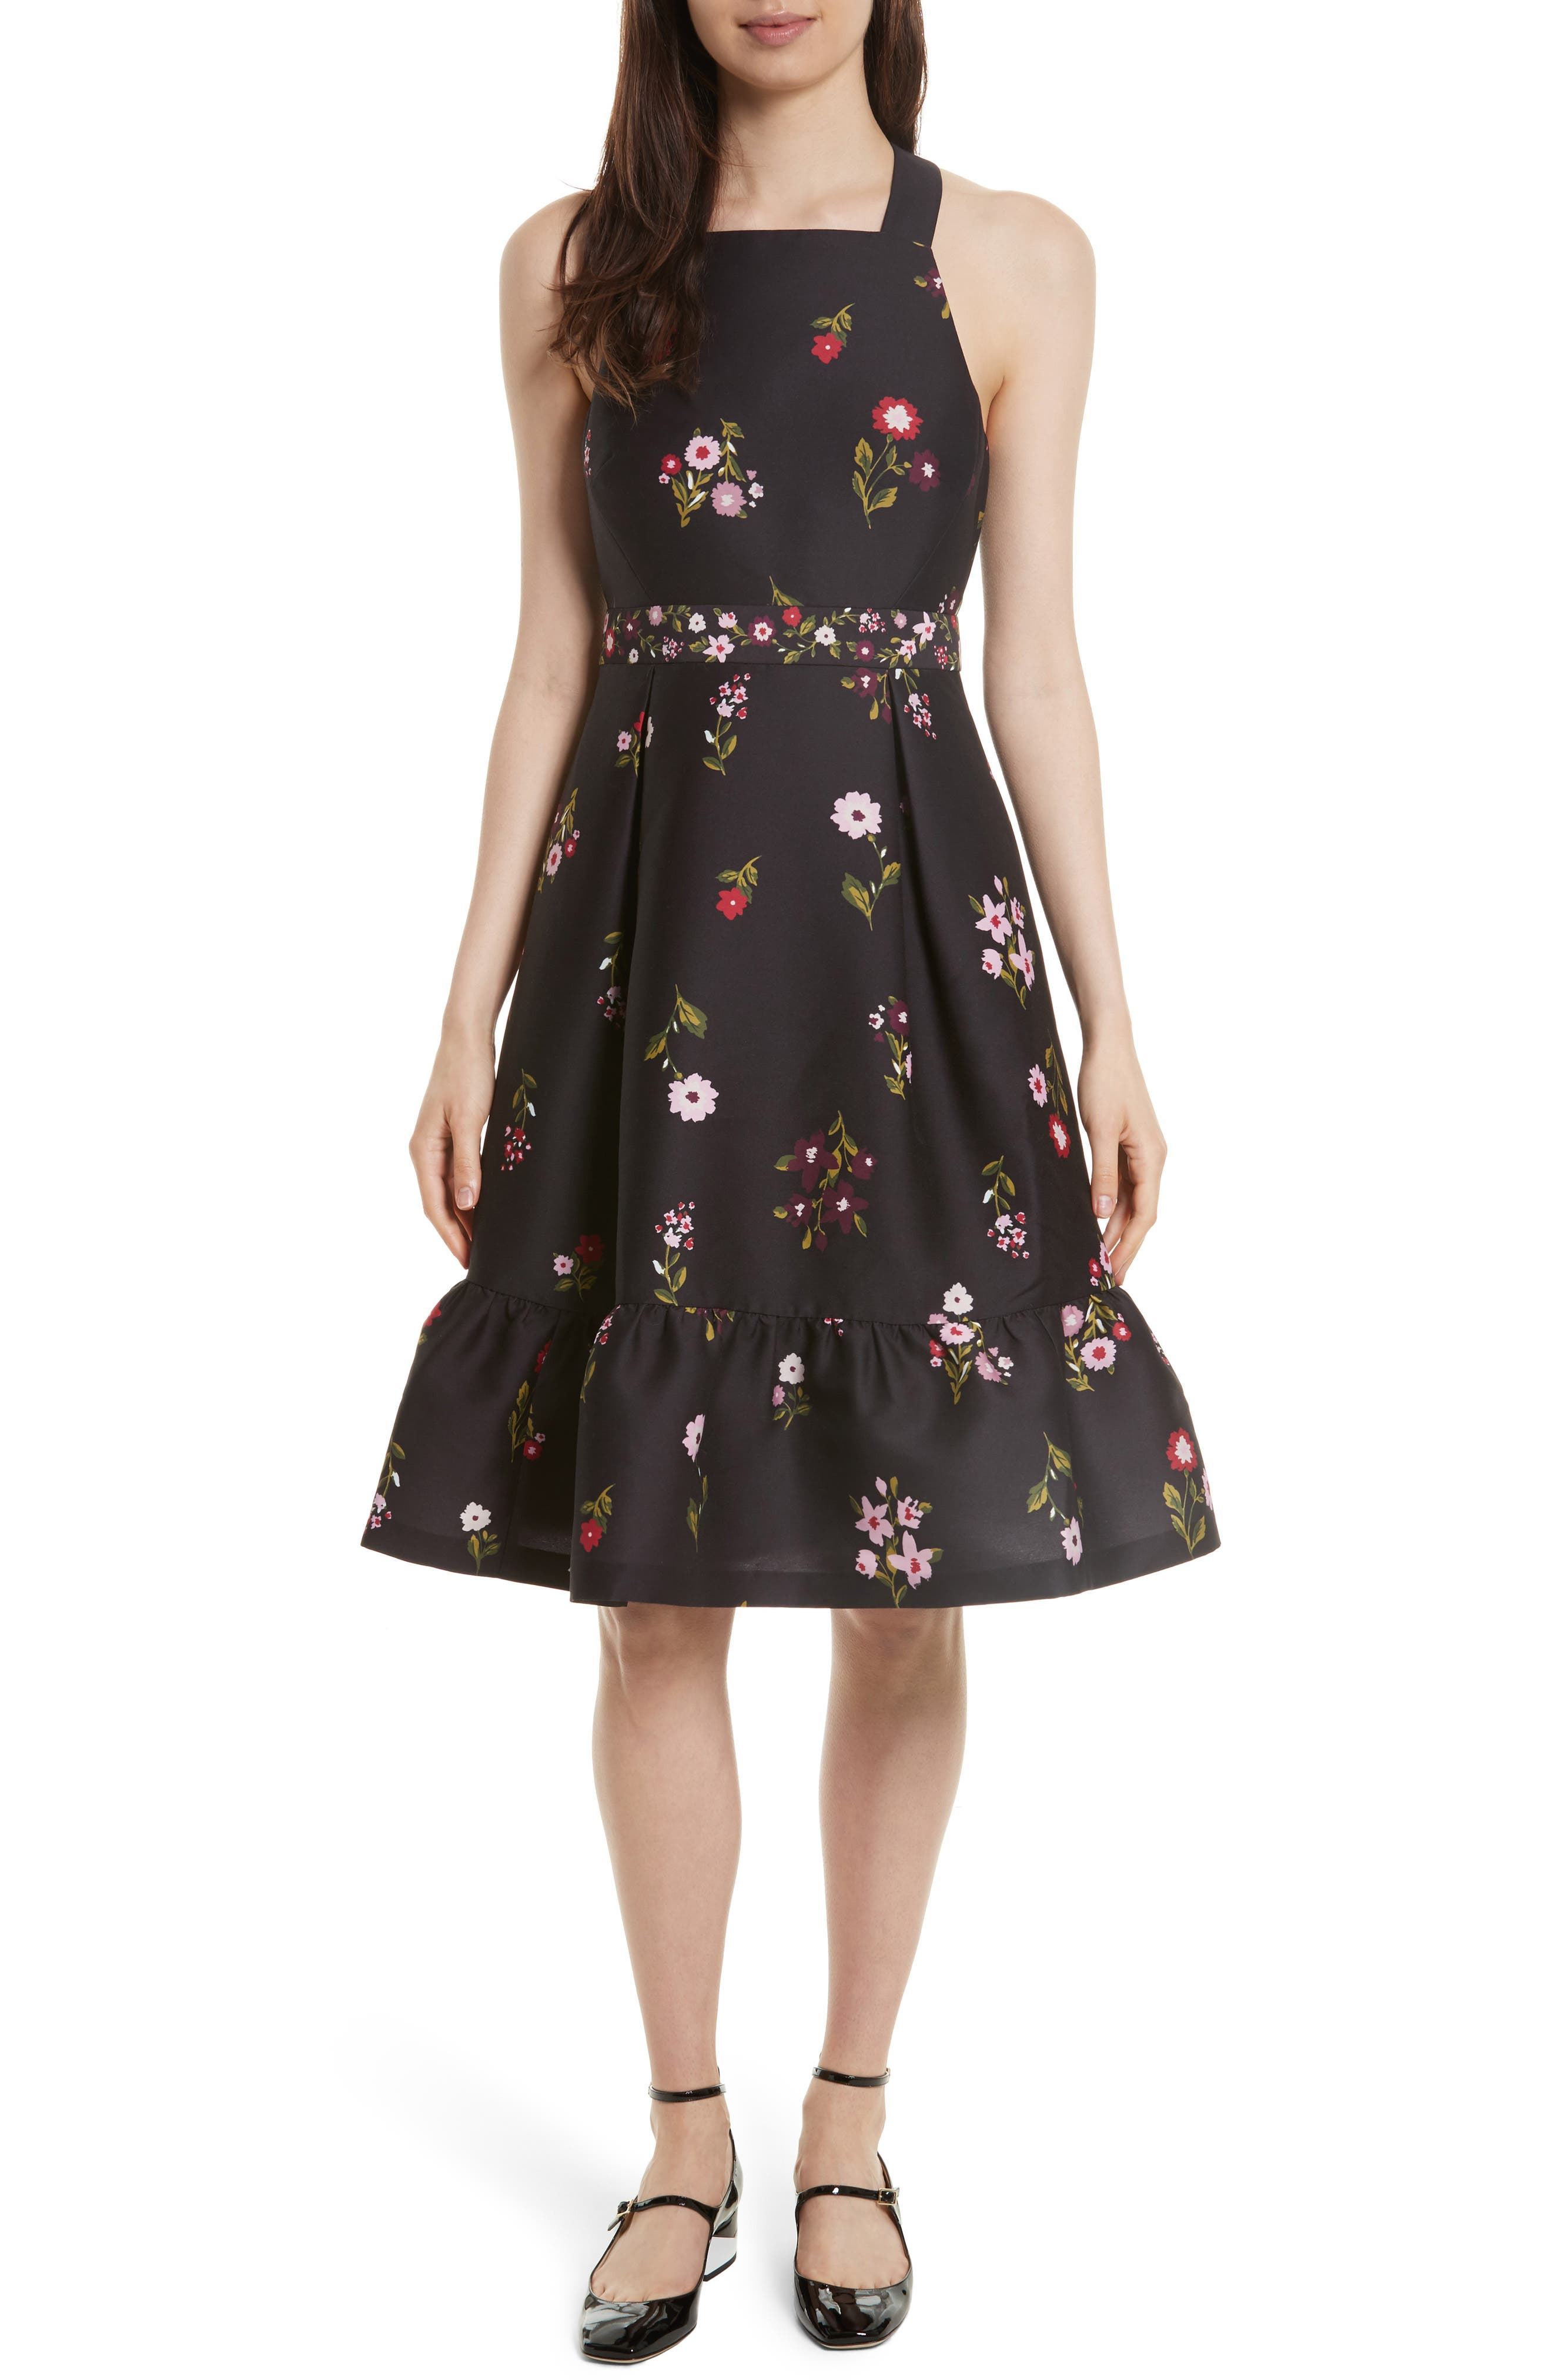 in bloom fit & flare dress,                         Main,                         color, Black